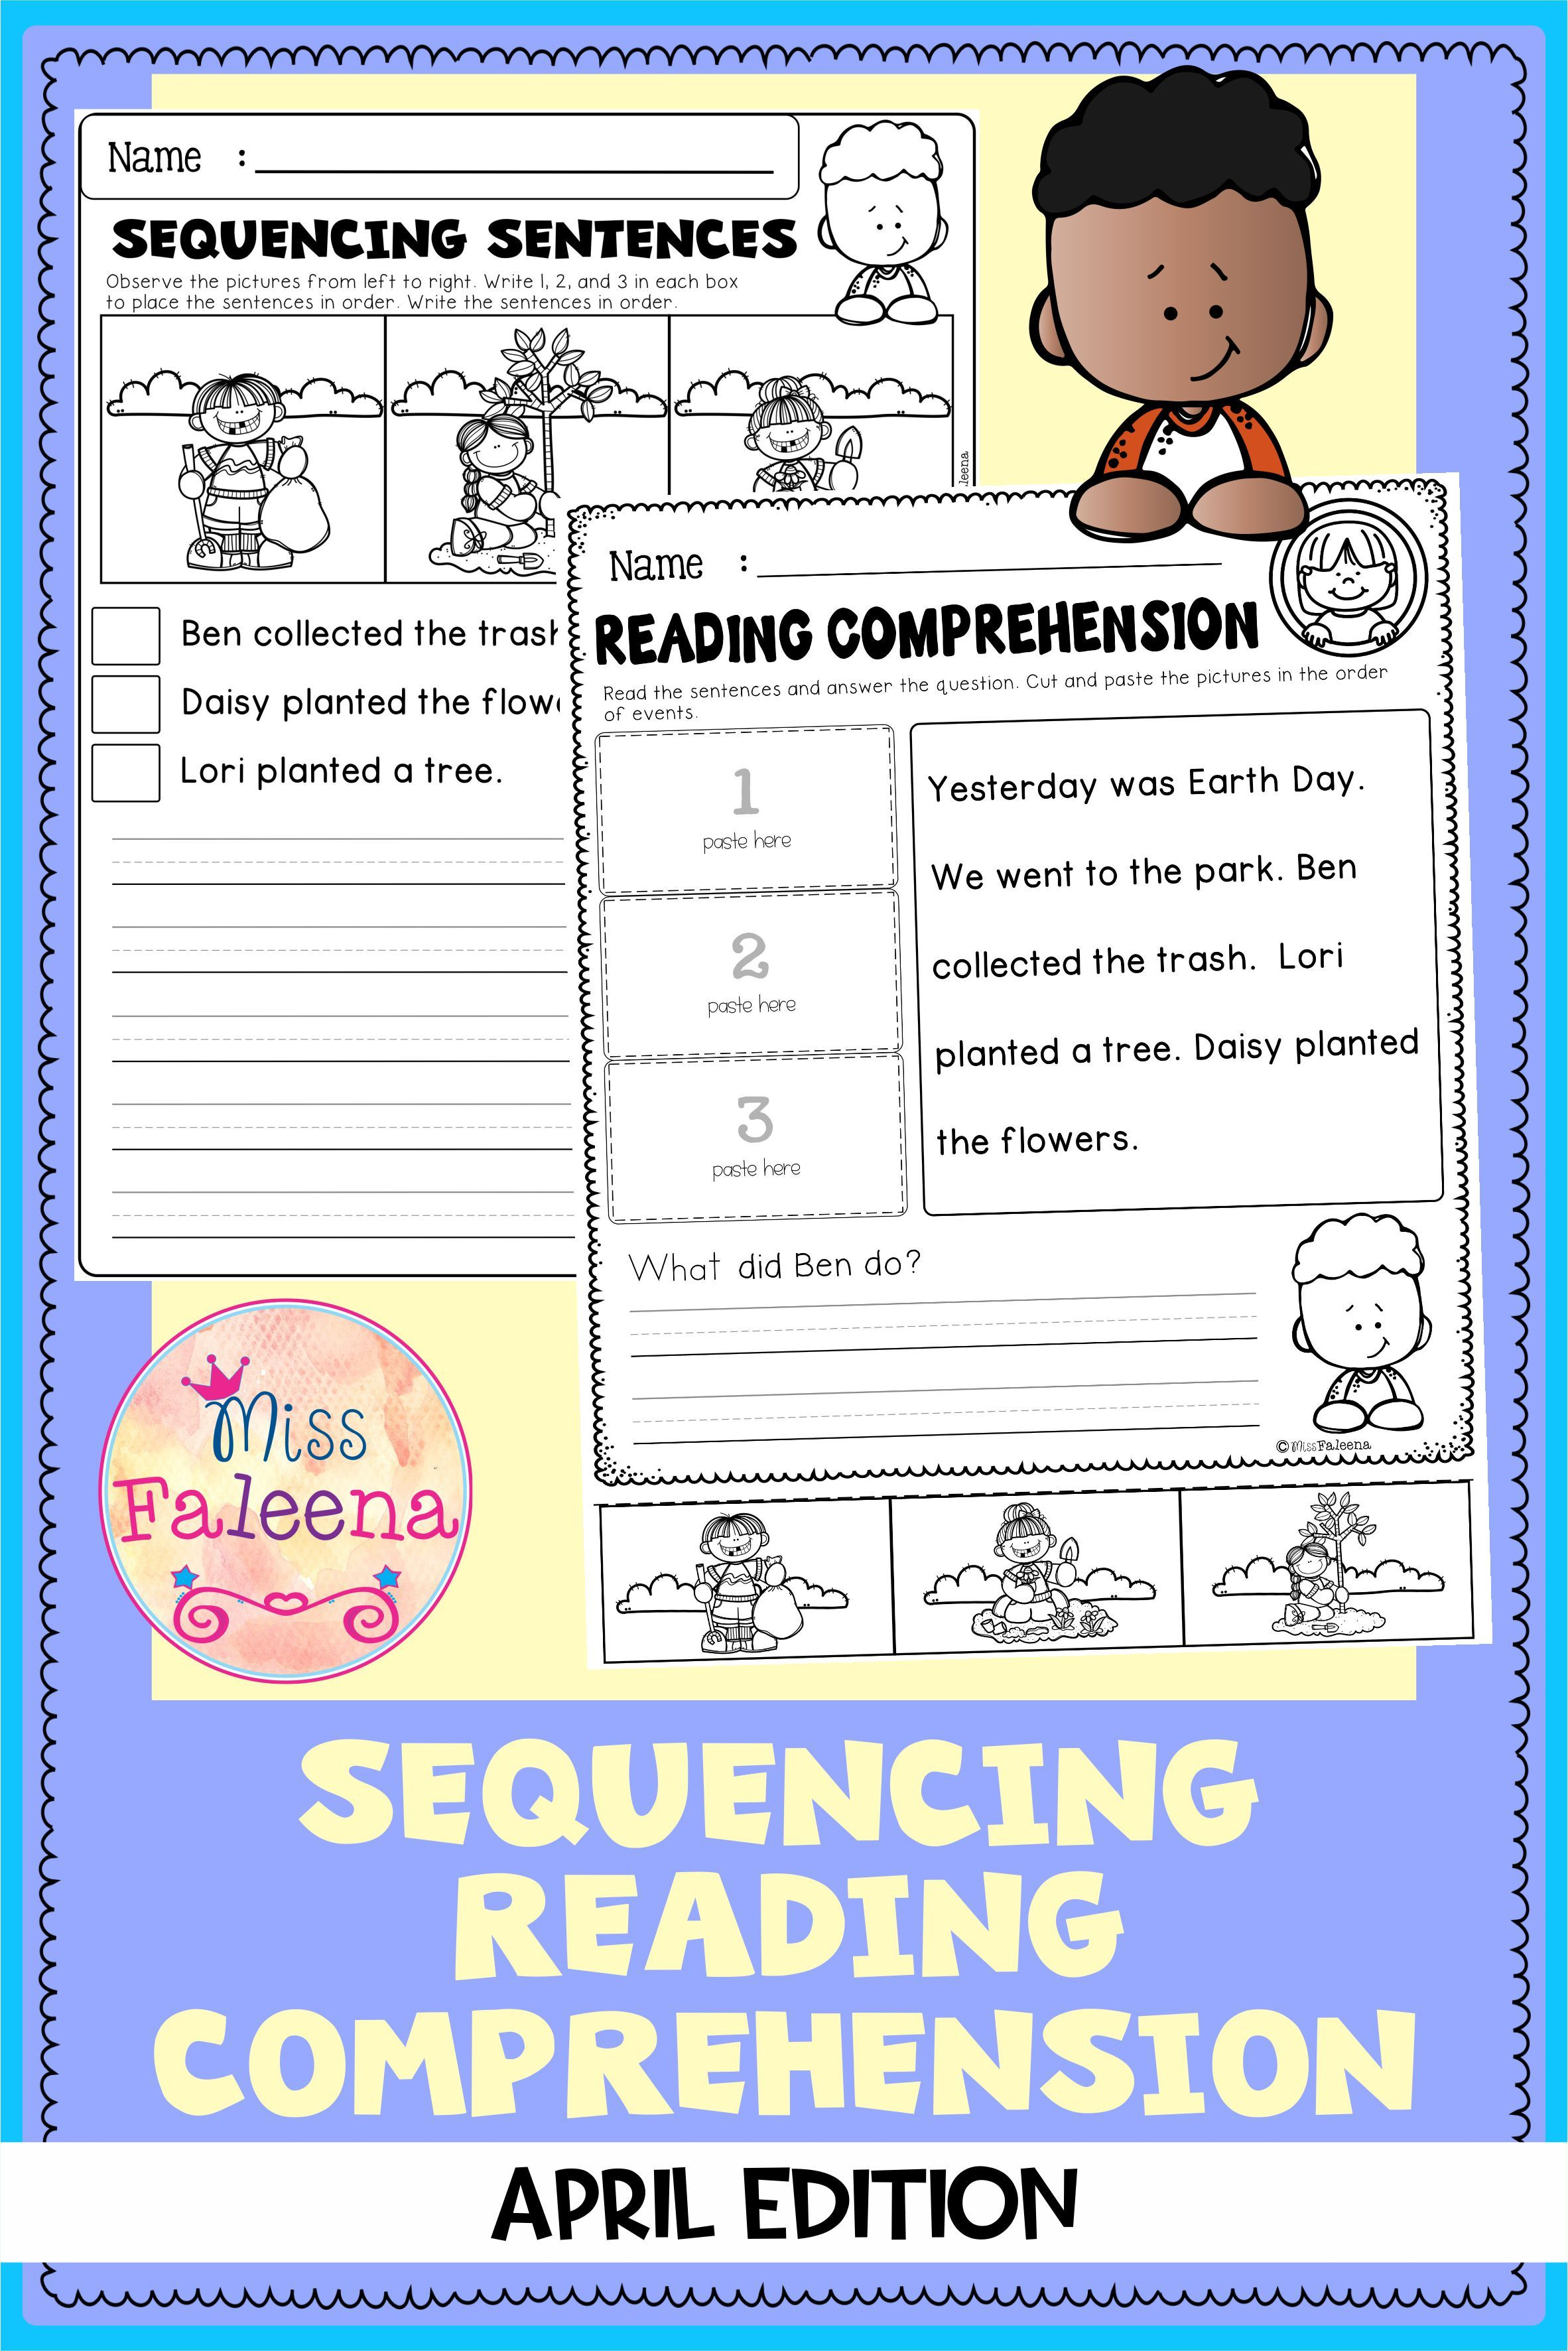 April Sequencing Reading Comprehension In 2021 Reading Comprehension Comprehension Reading Comprehension Worksheets [ 3544 x 2364 Pixel ]